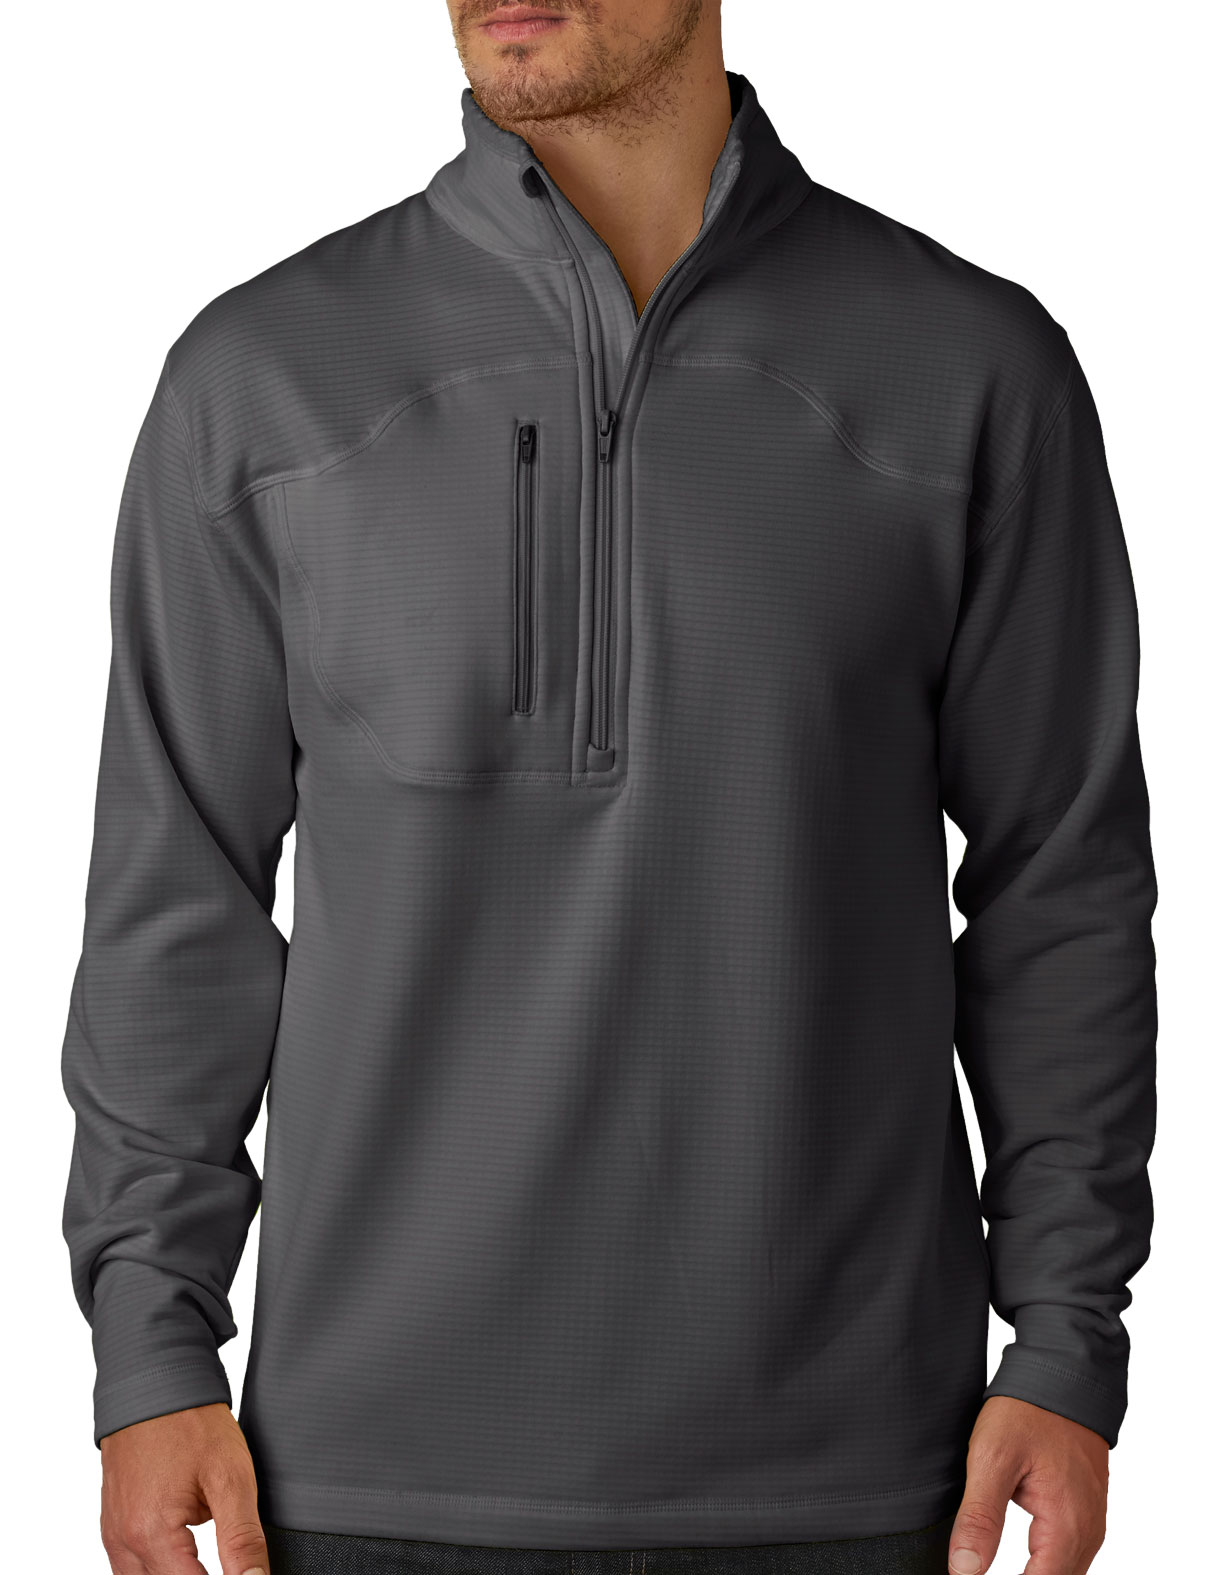 UltraClub® Adult Cool & Dry Box Jacquard 1/4-Zip Micro-Fleece